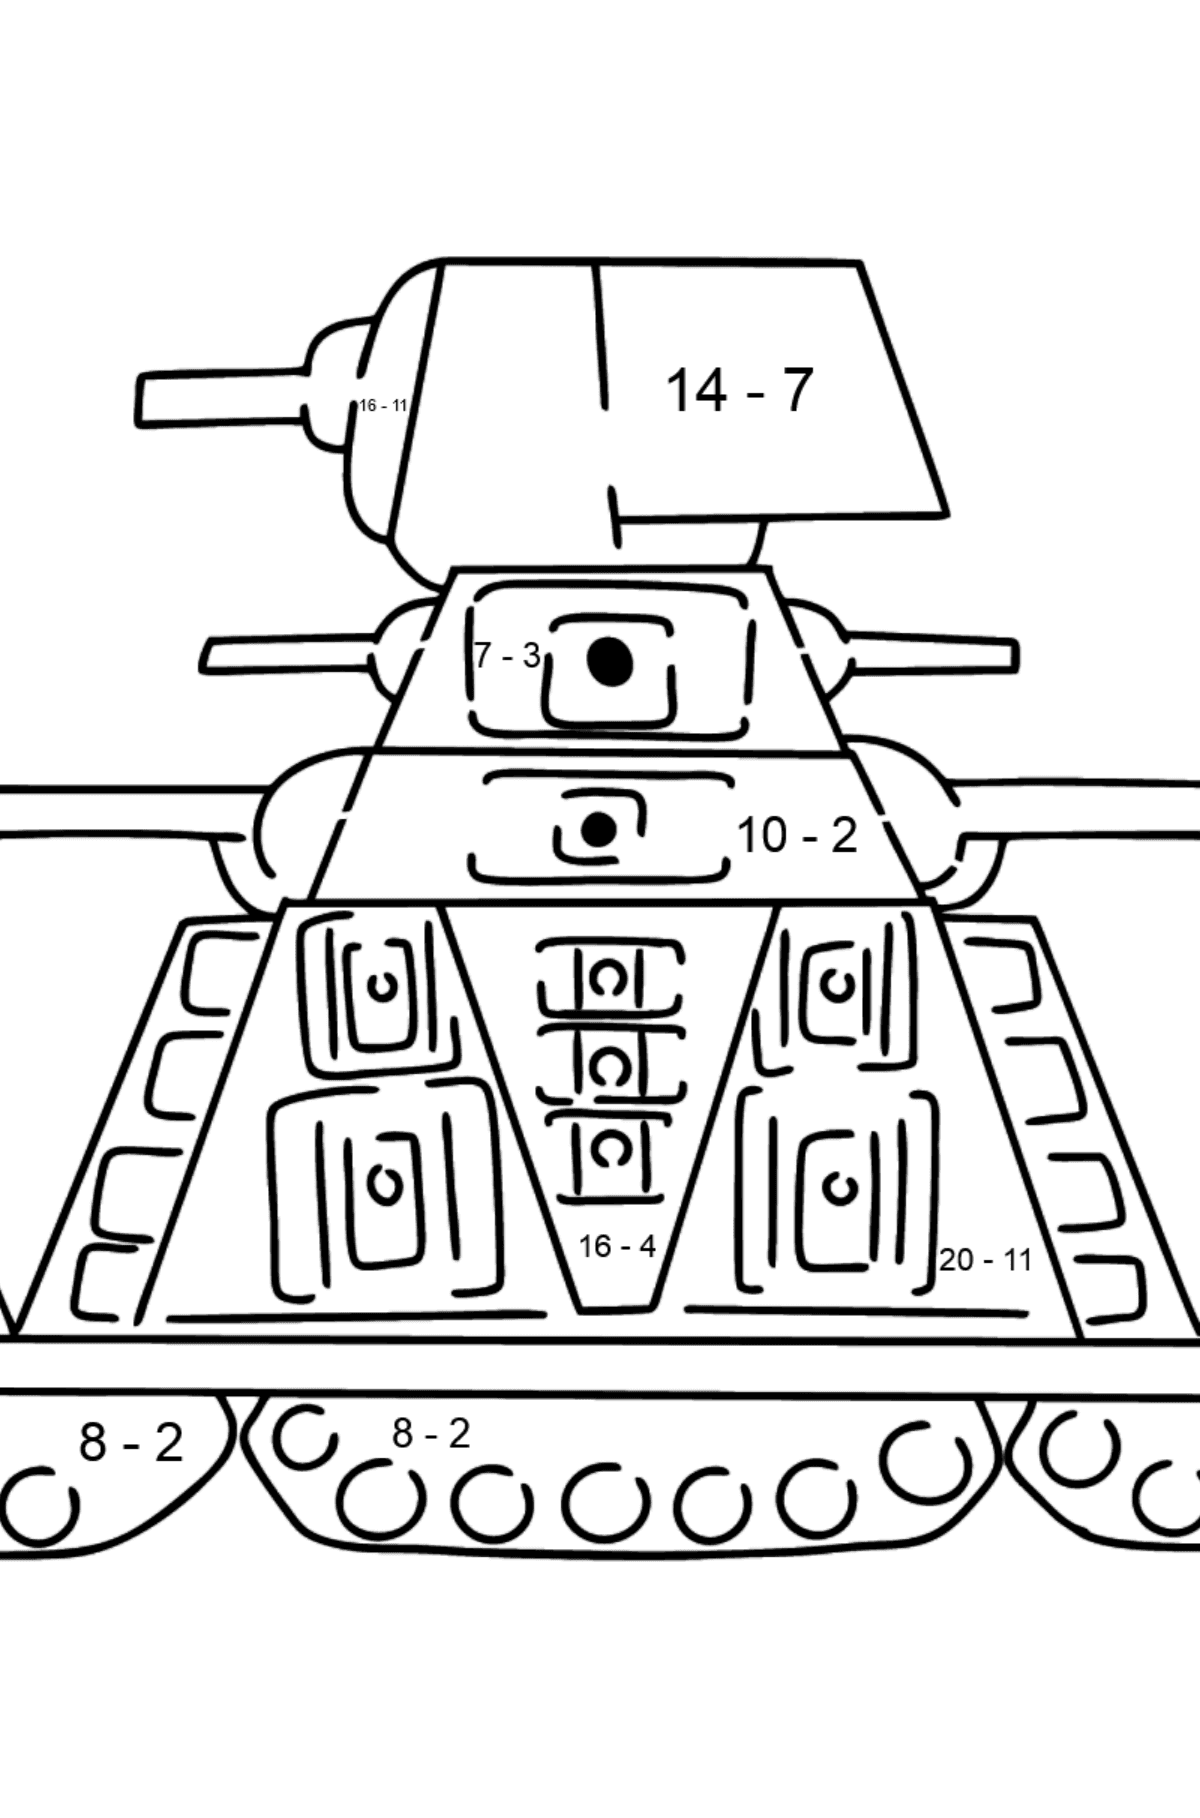 Tank KV 44 coloring page - Math Coloring - Subtraction for Kids